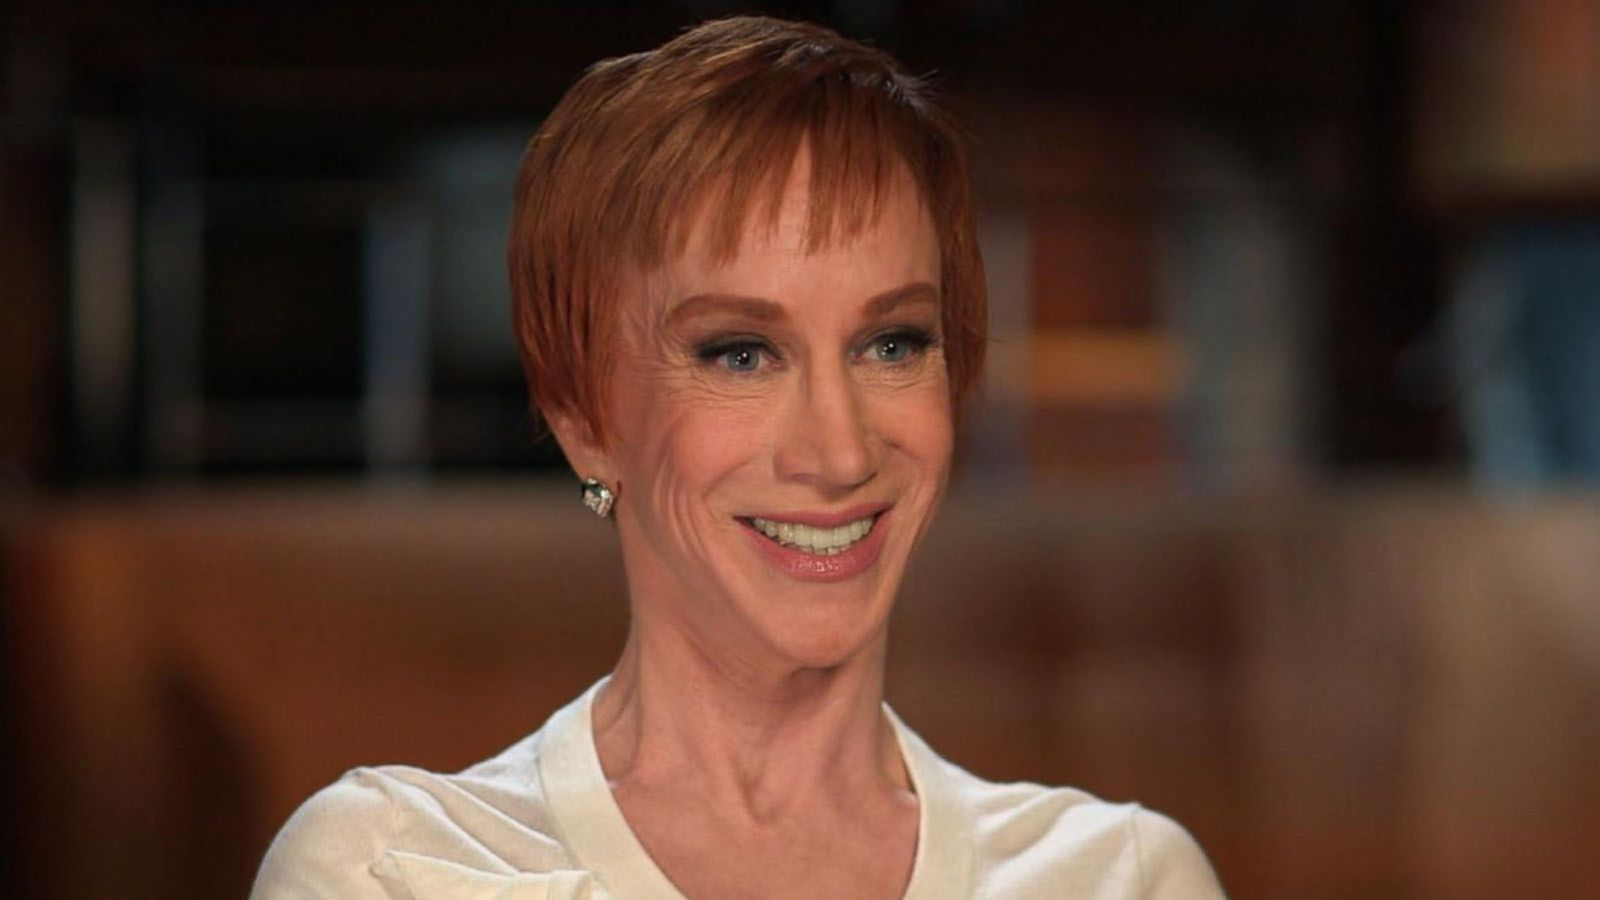 I just won t go down   Kathy Griffin on fighting her way back after      I just won t go down   Kathy Griffin on fighting her way back after a  scandal threatened to end her career   ABC News